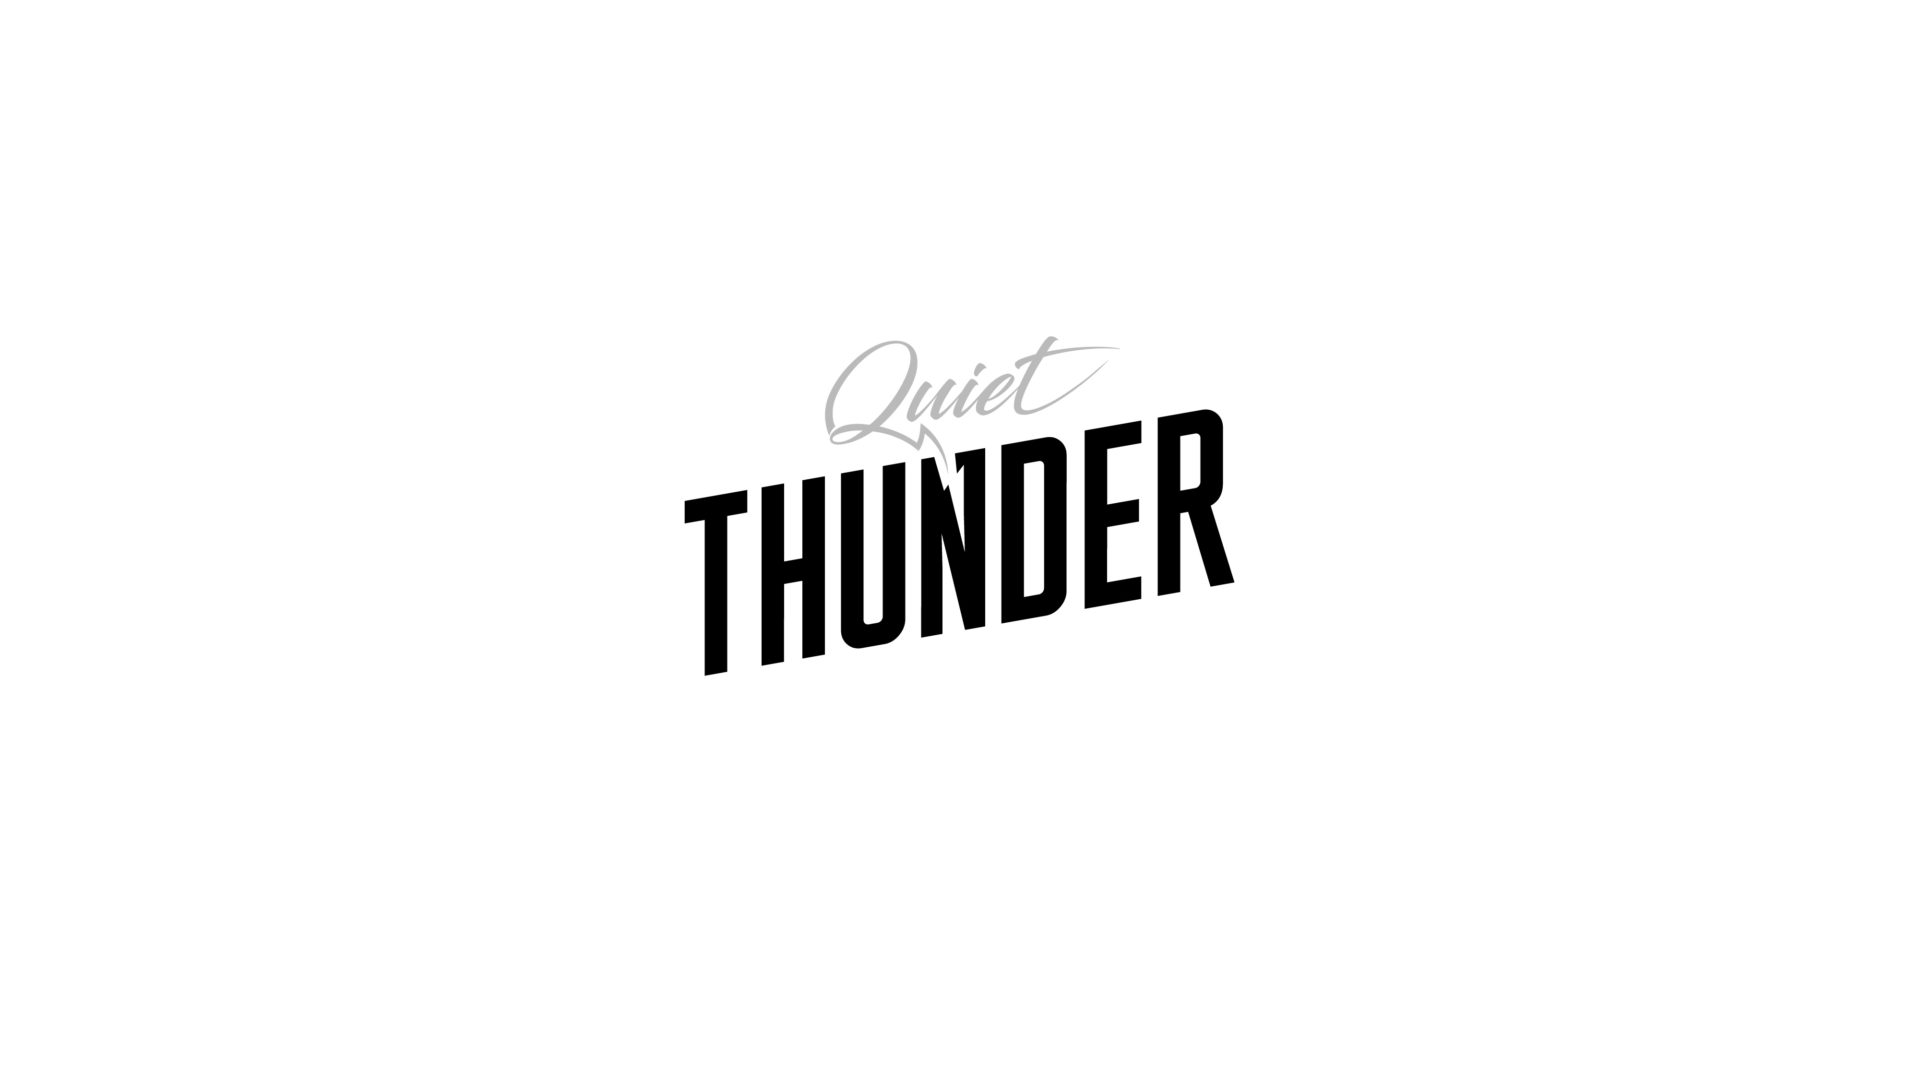 black and white Quiet Thunder logo